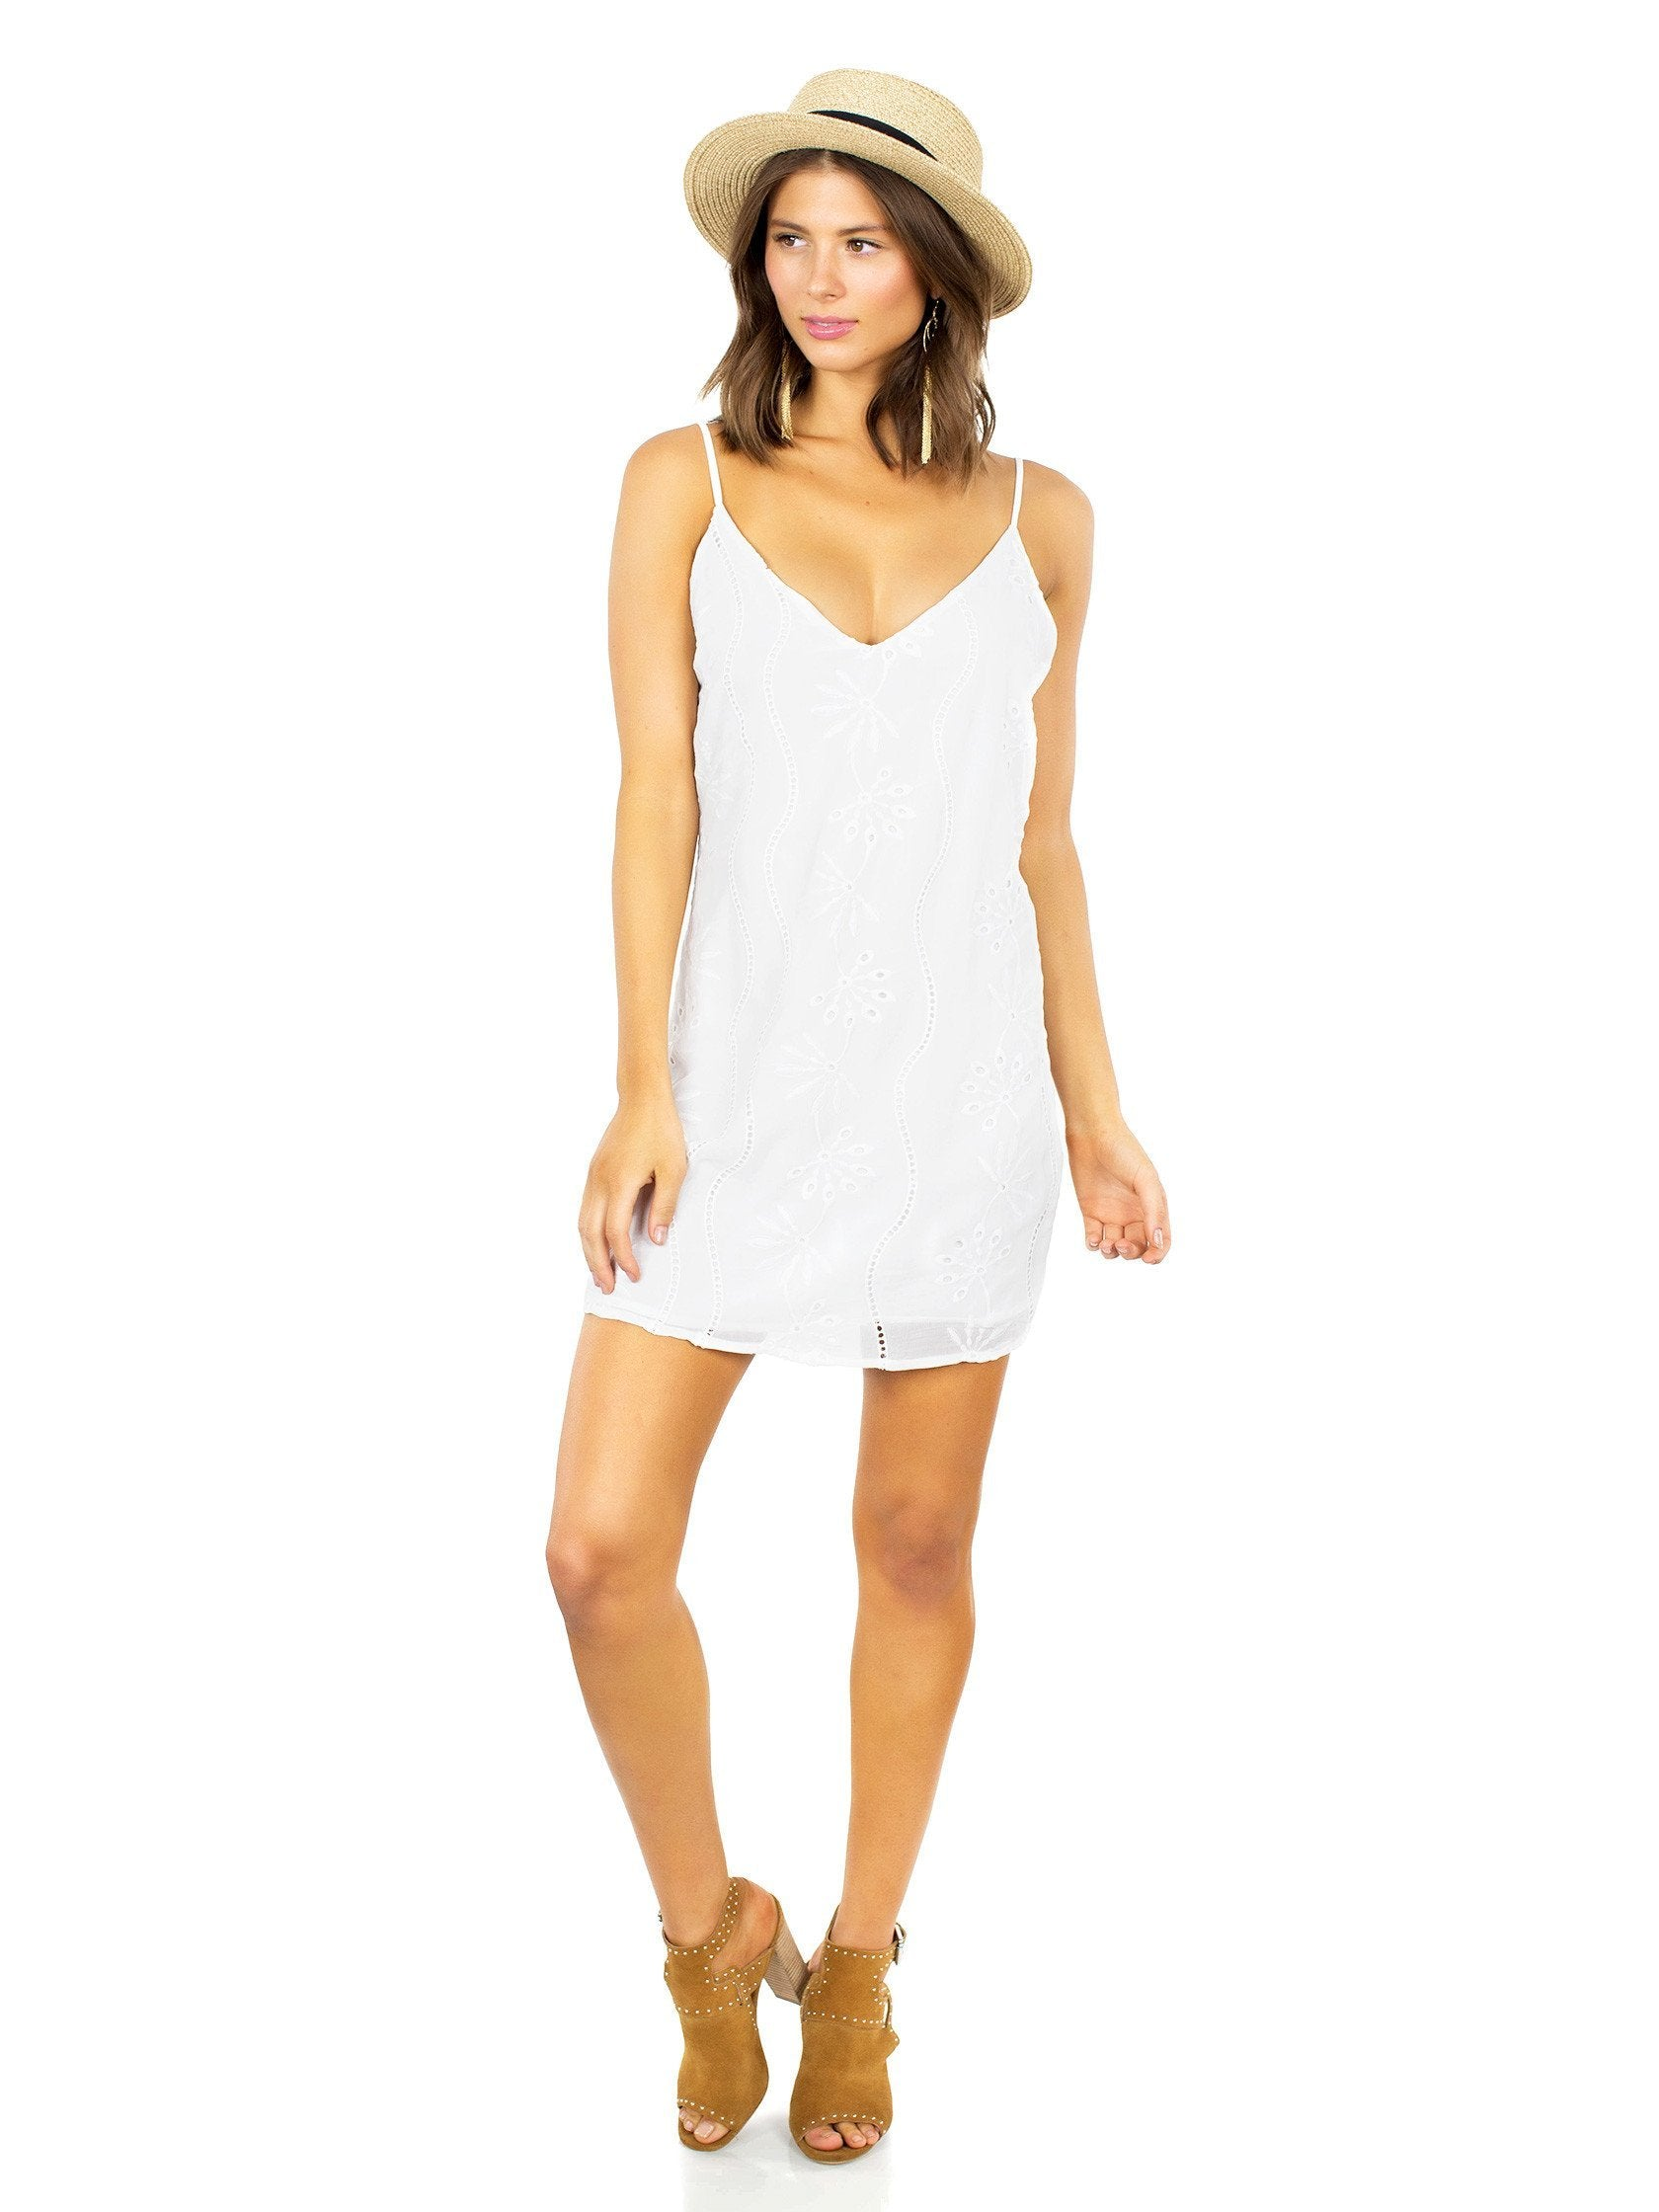 Women outfit in a dress rental from Lucca Couture called Soaking Up The Sun Mini Dress